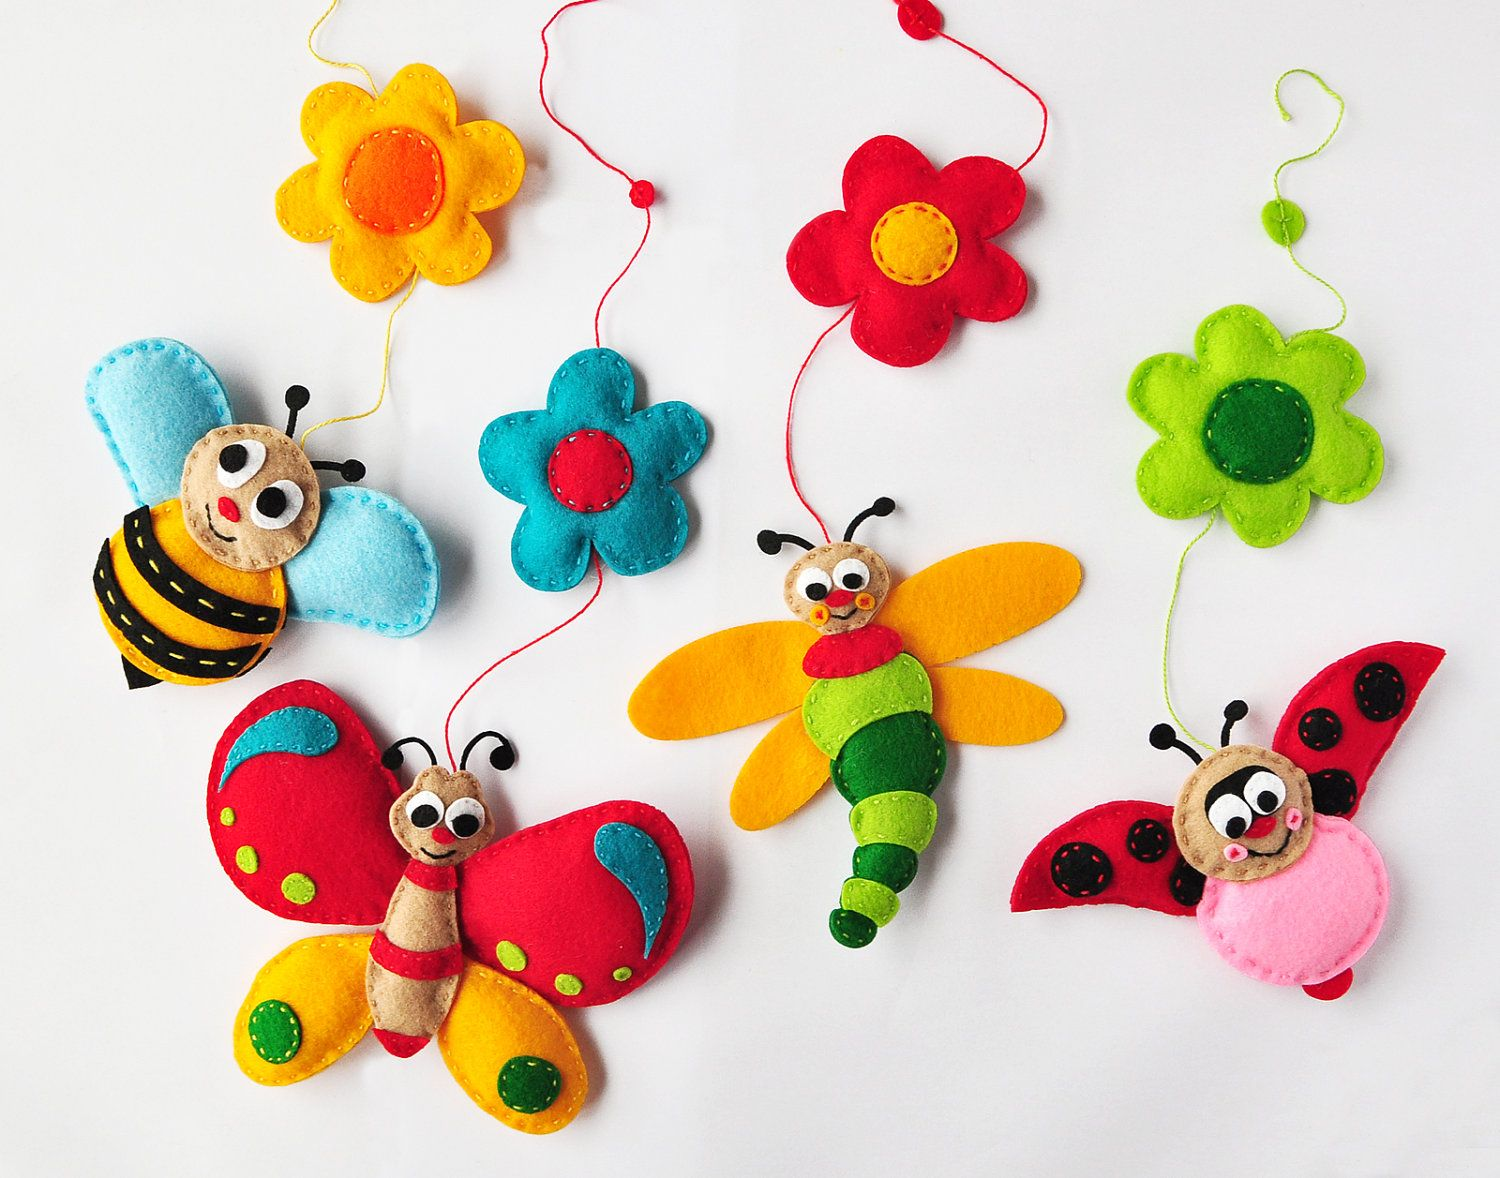 Crib mobiles bad for babies - Iko Plush Insects Baby Mobile Crib Mobile Nursery Insects Mobile Felt Mobile Butterfly Bee Dragonfly Butterfly Ladybug